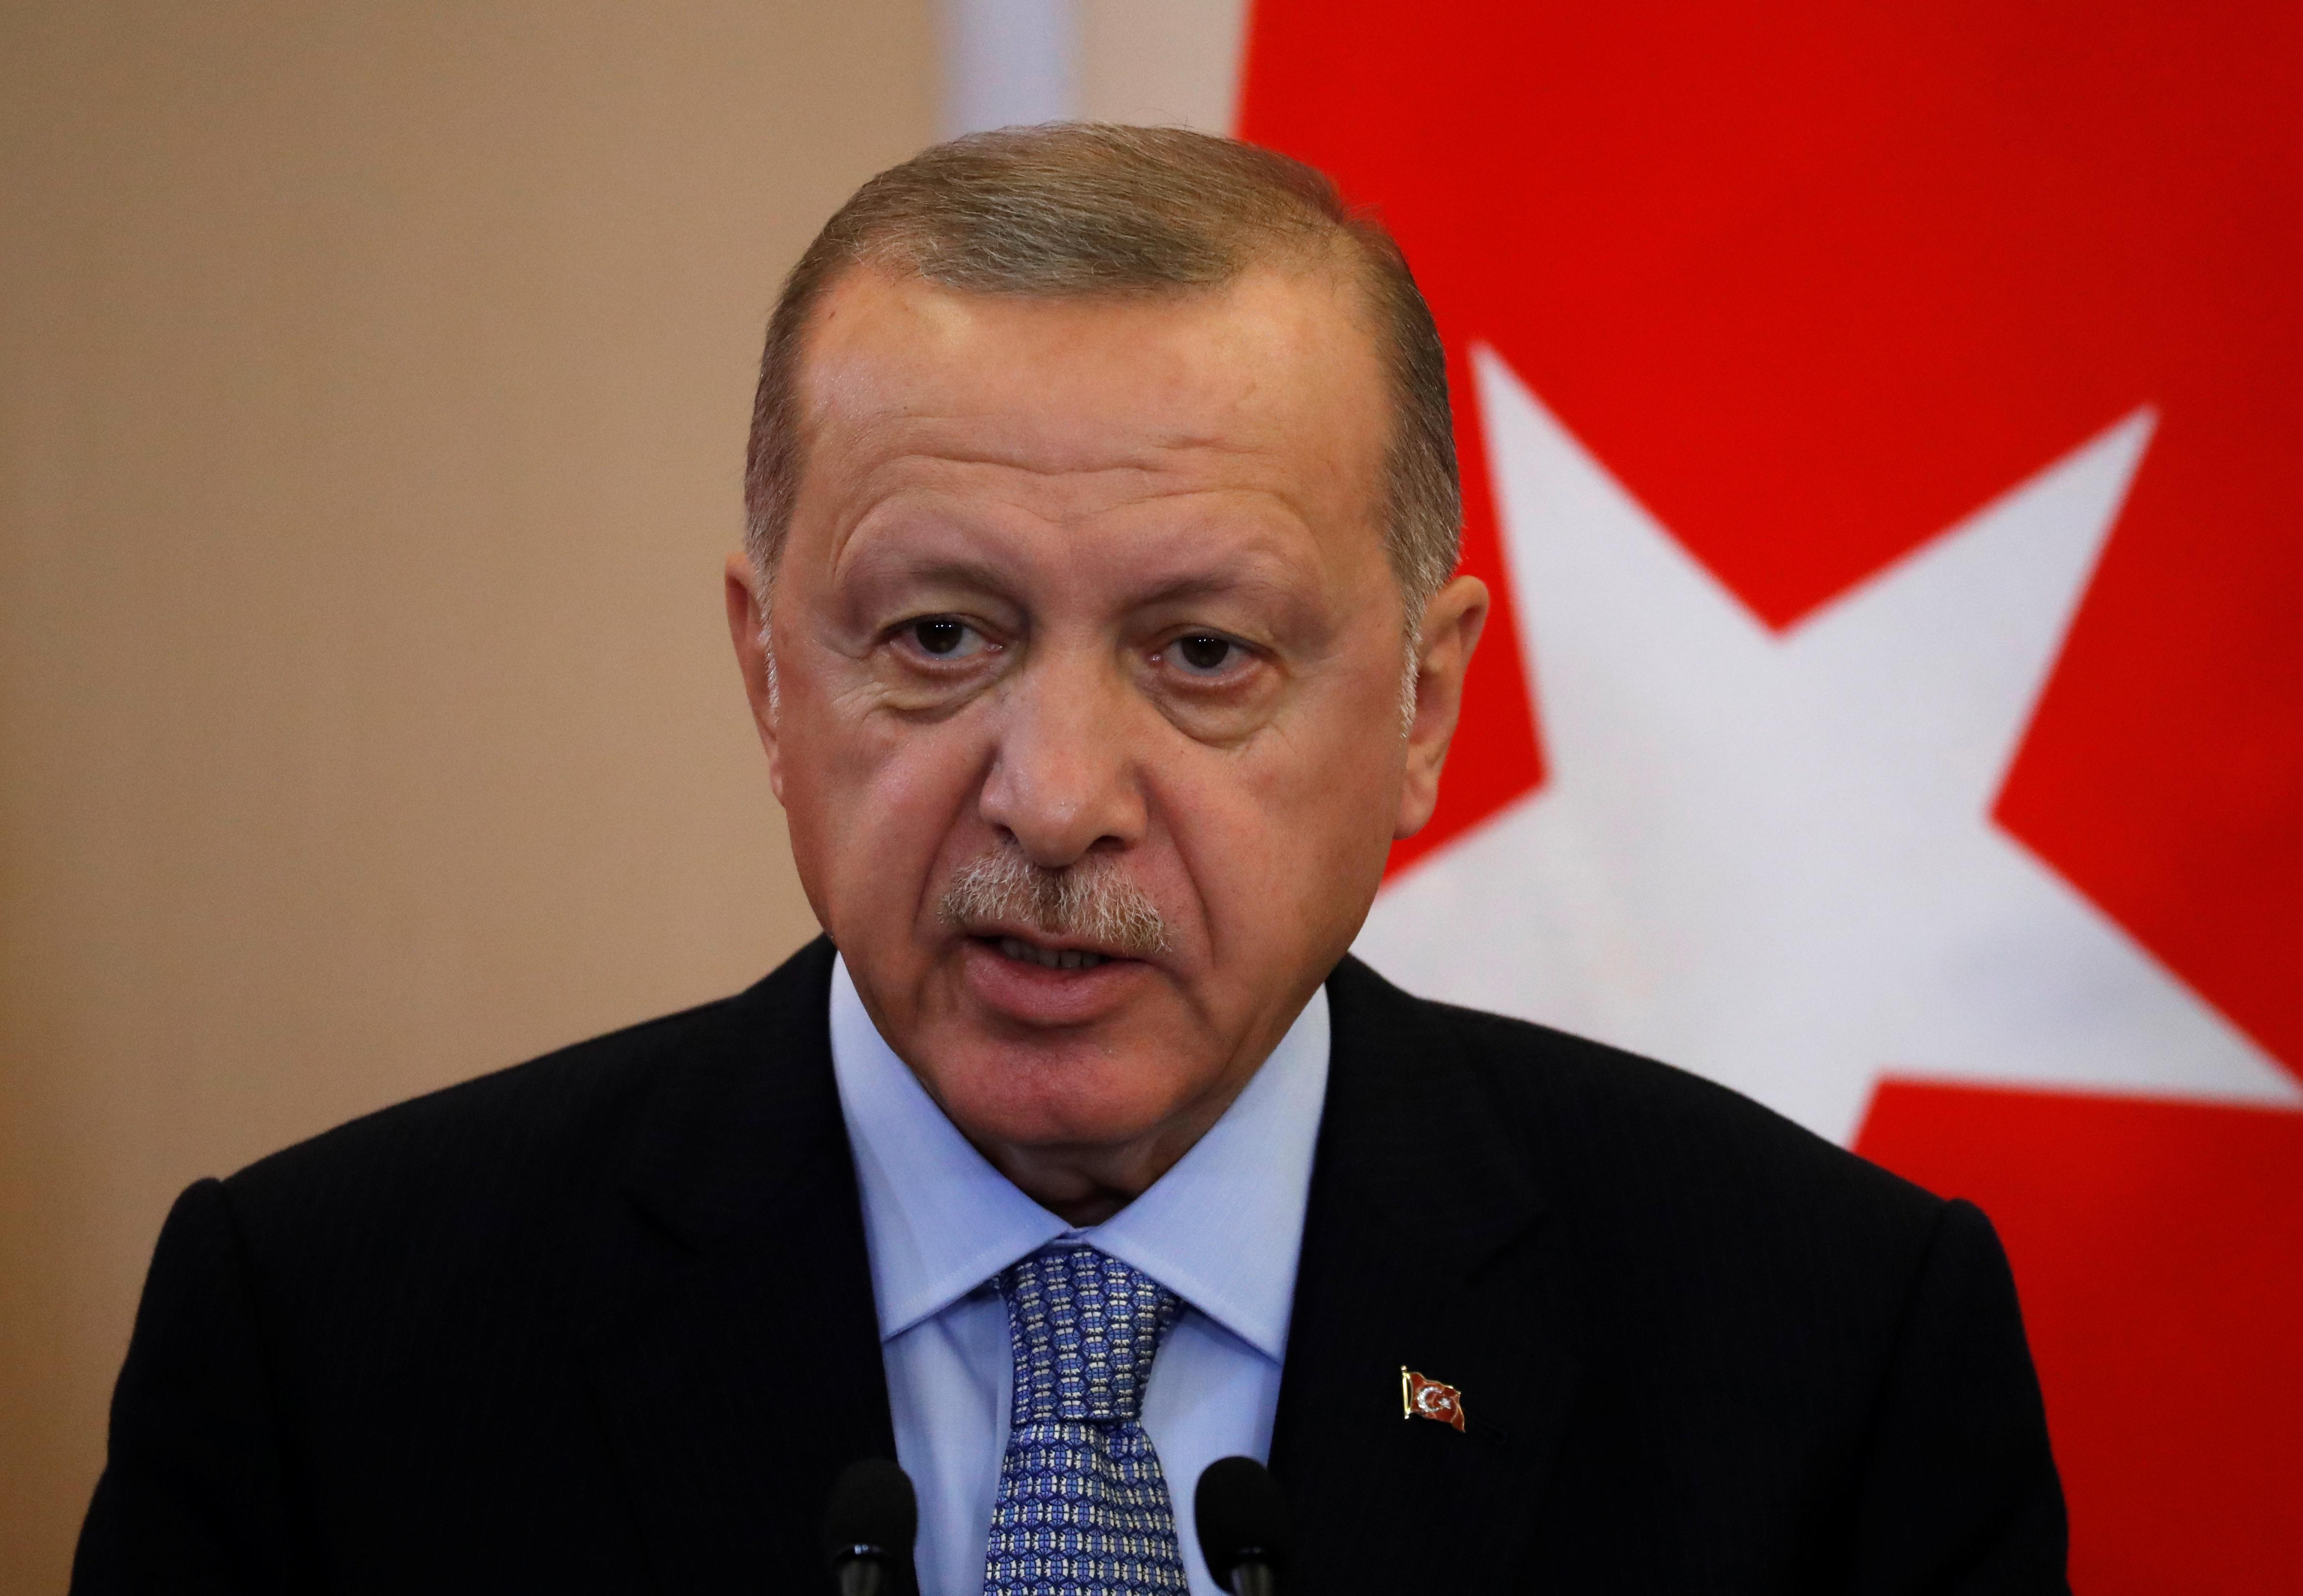 Erdogan, after sealing Russia deal, says U.S. has not kept promises...